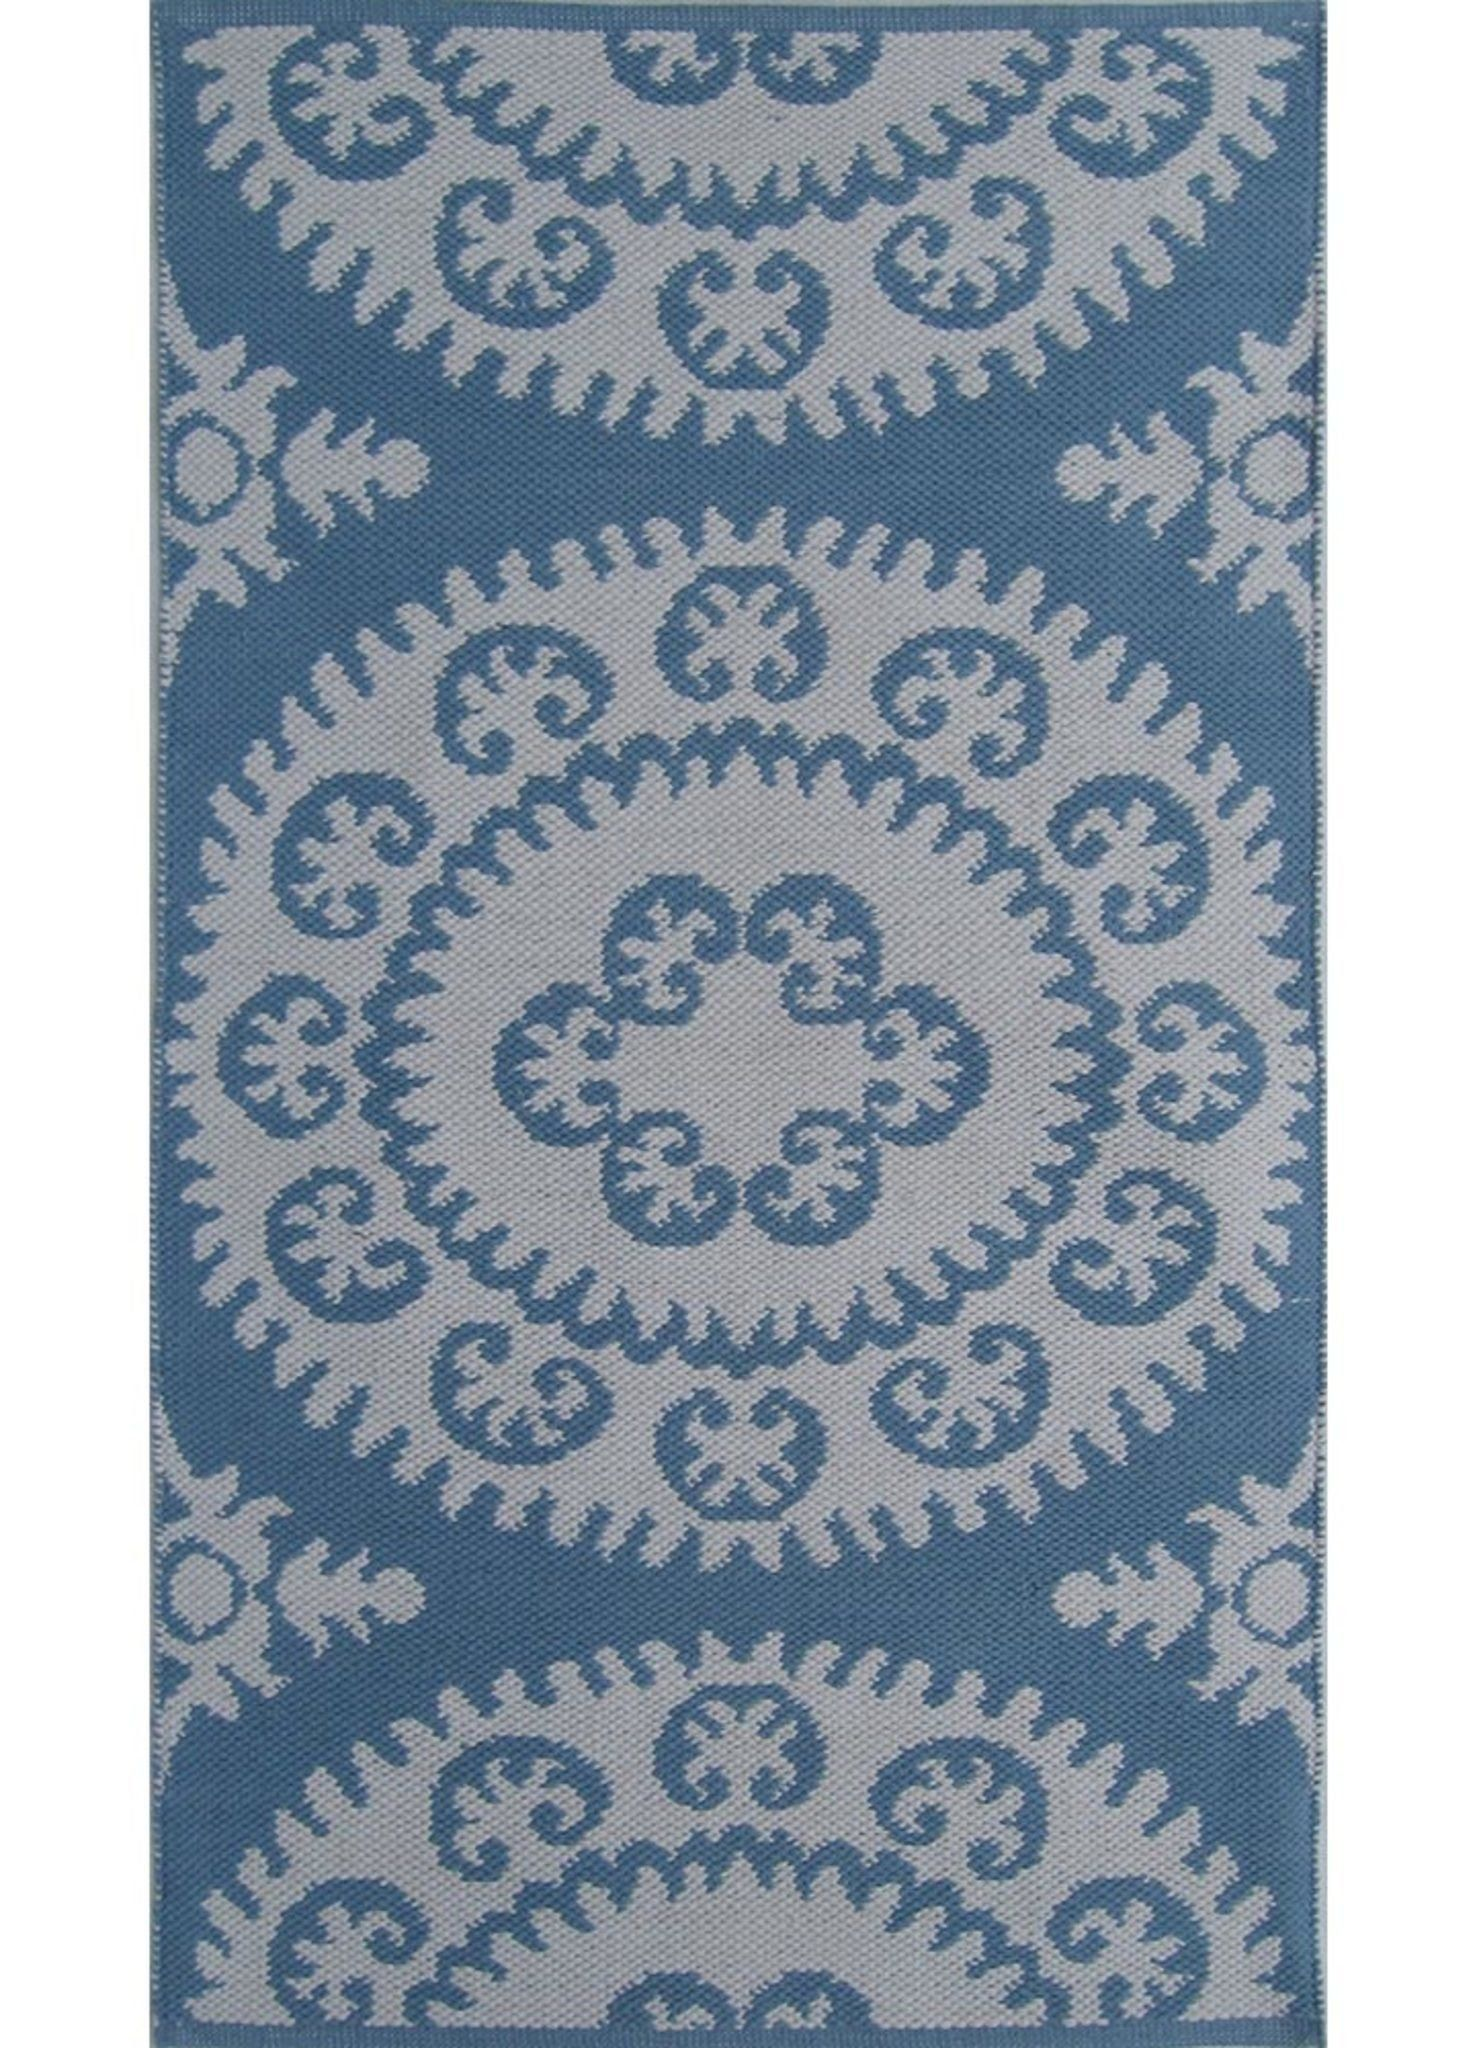 Flat Weave J2 220 Dusk Blue Bright White Cotton Rug Products